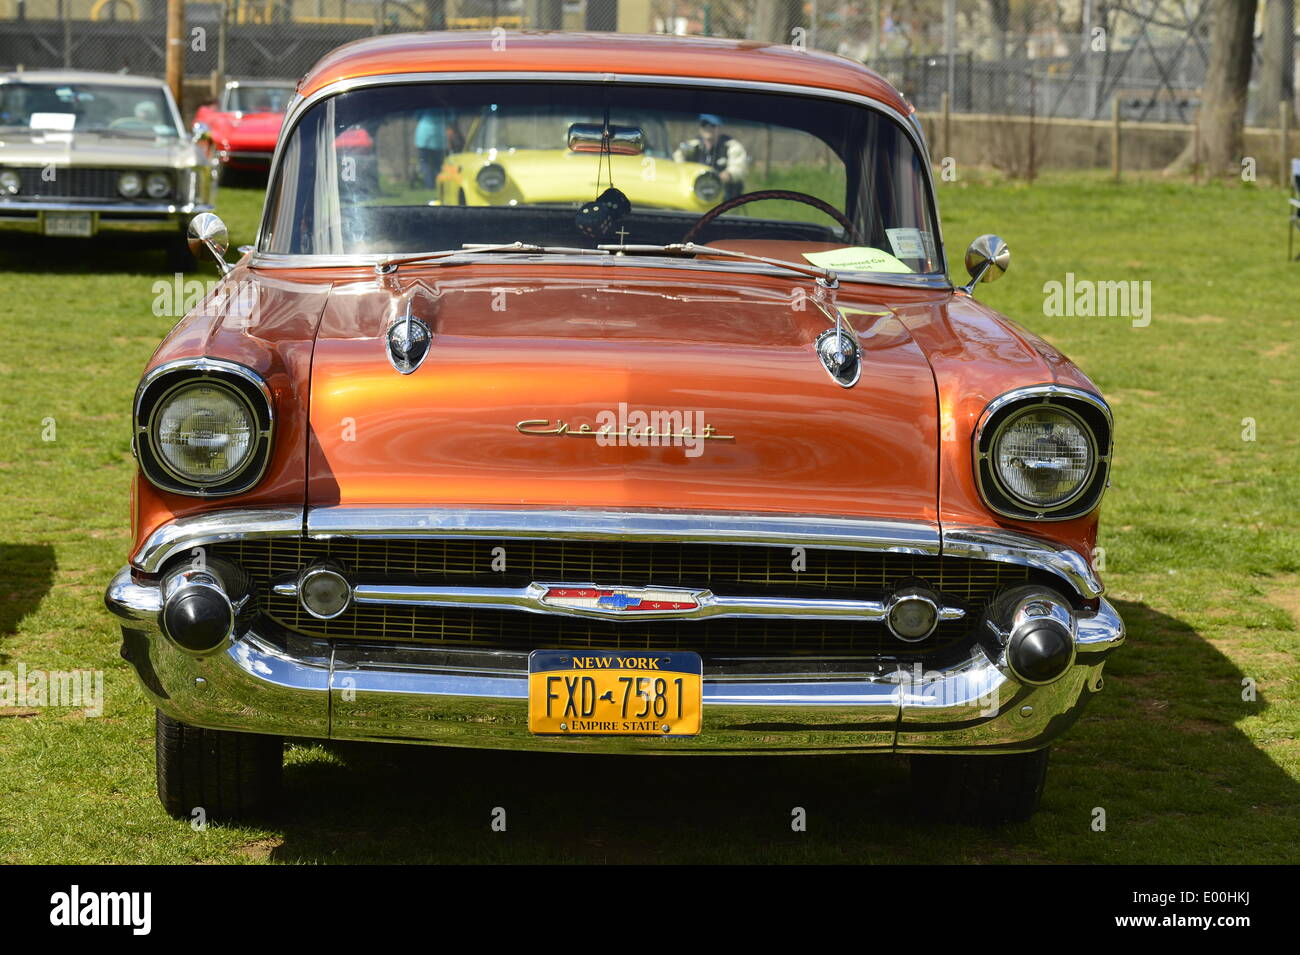 Floral Park, New York, U.S. 27th April, 2014. An Orange 1957 Chevrolet